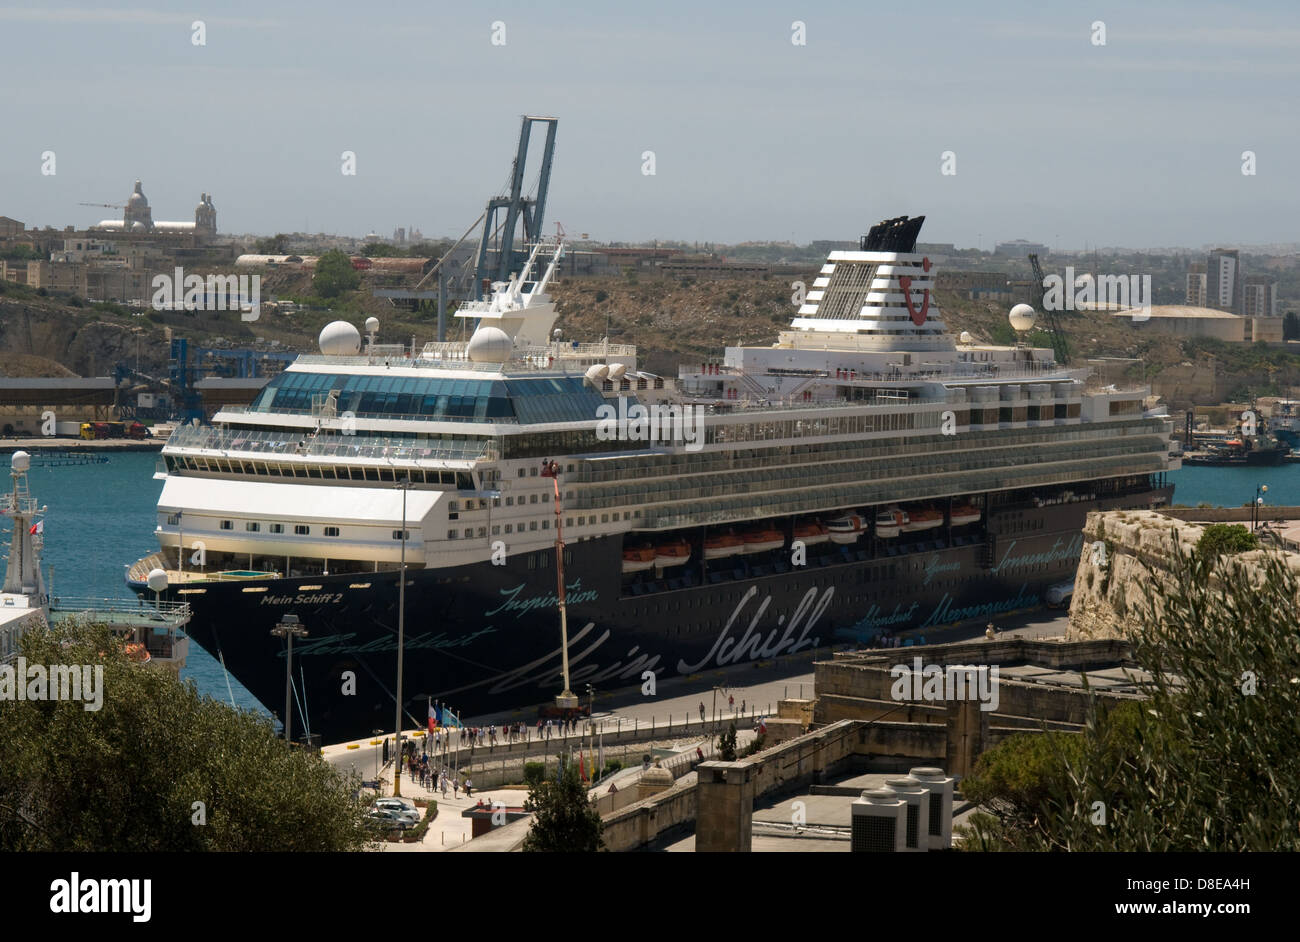 Cruise ship Mein Schiff 2 calls into grand harbour to allow it passengers to explore Malta for the day. - Stock Image